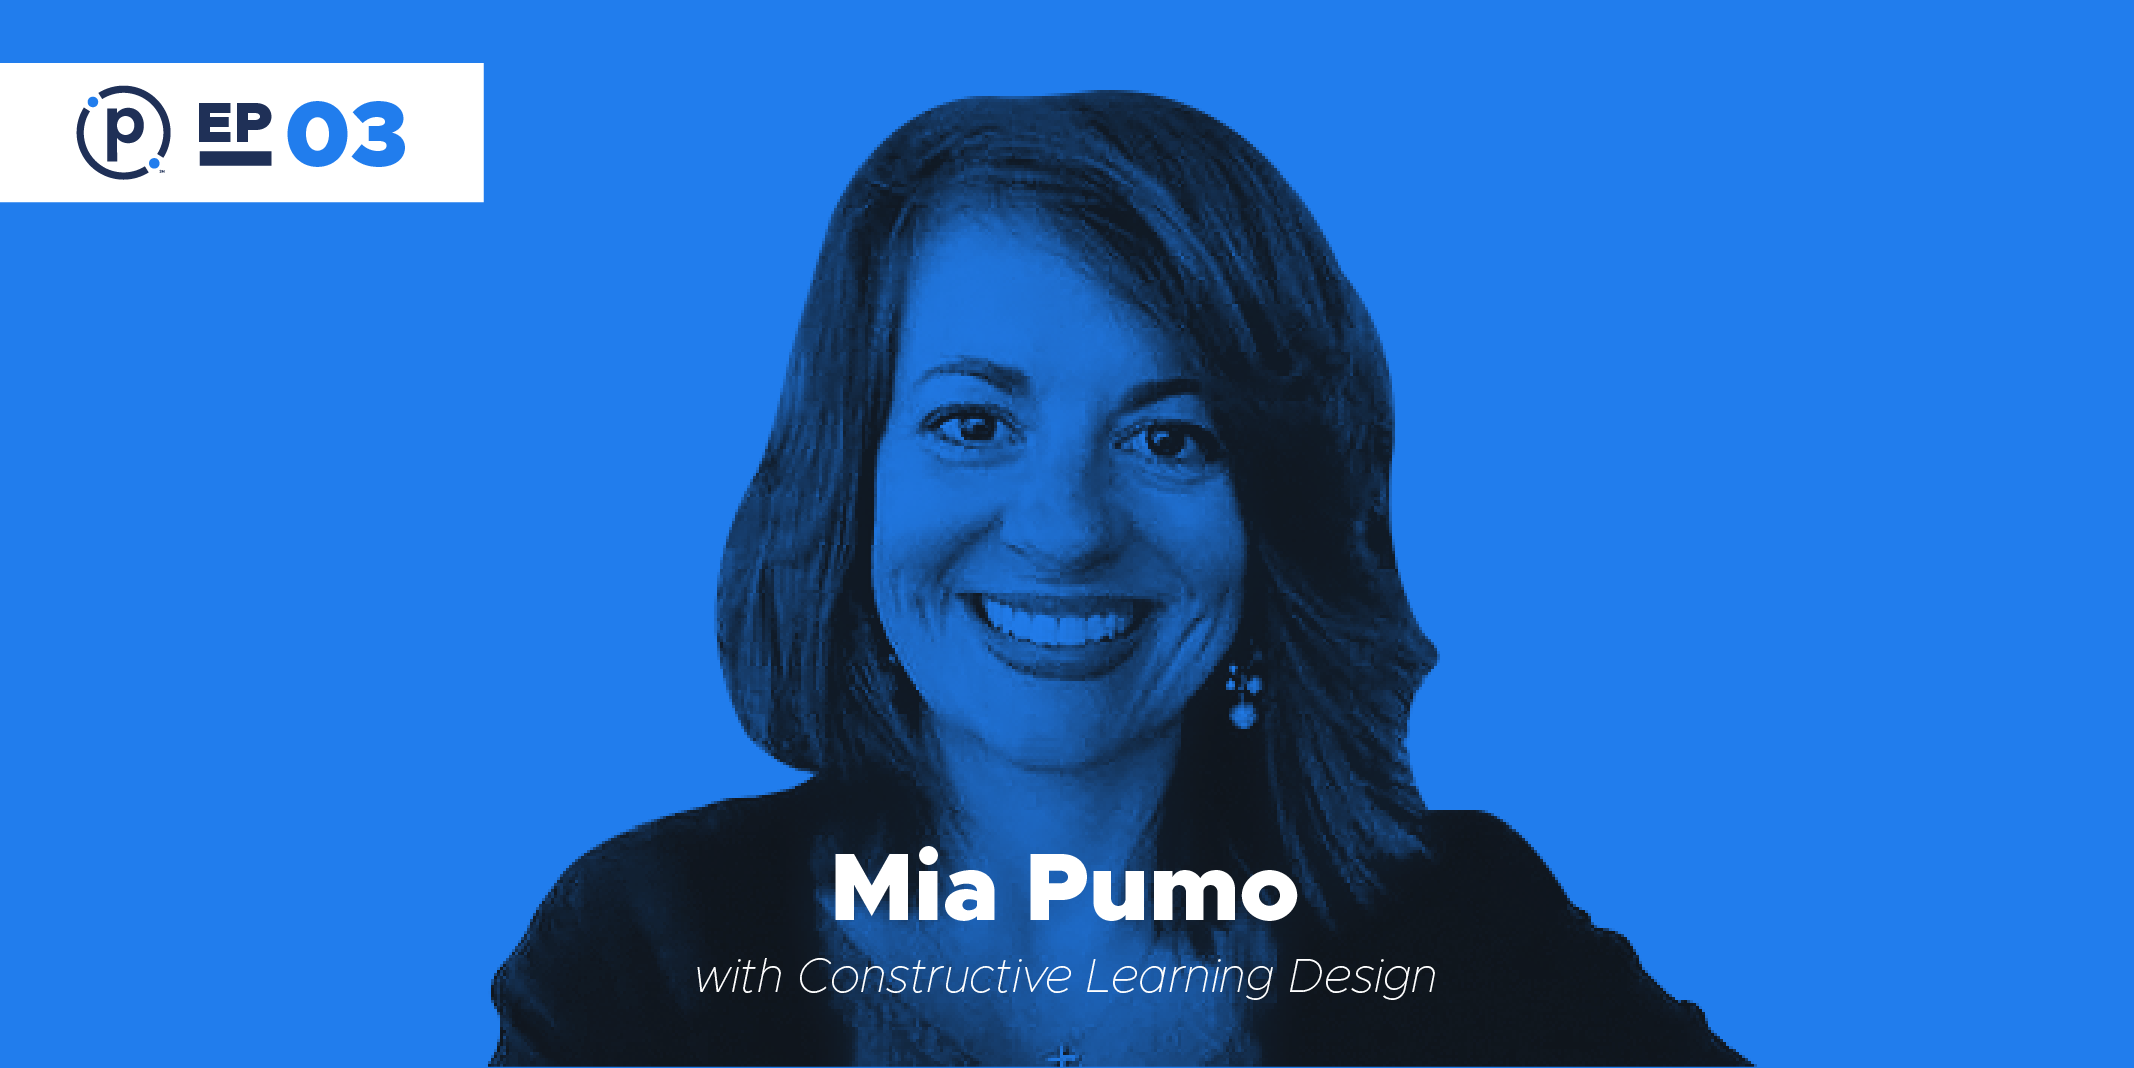 Mia Pumo with Constructive Learning Design